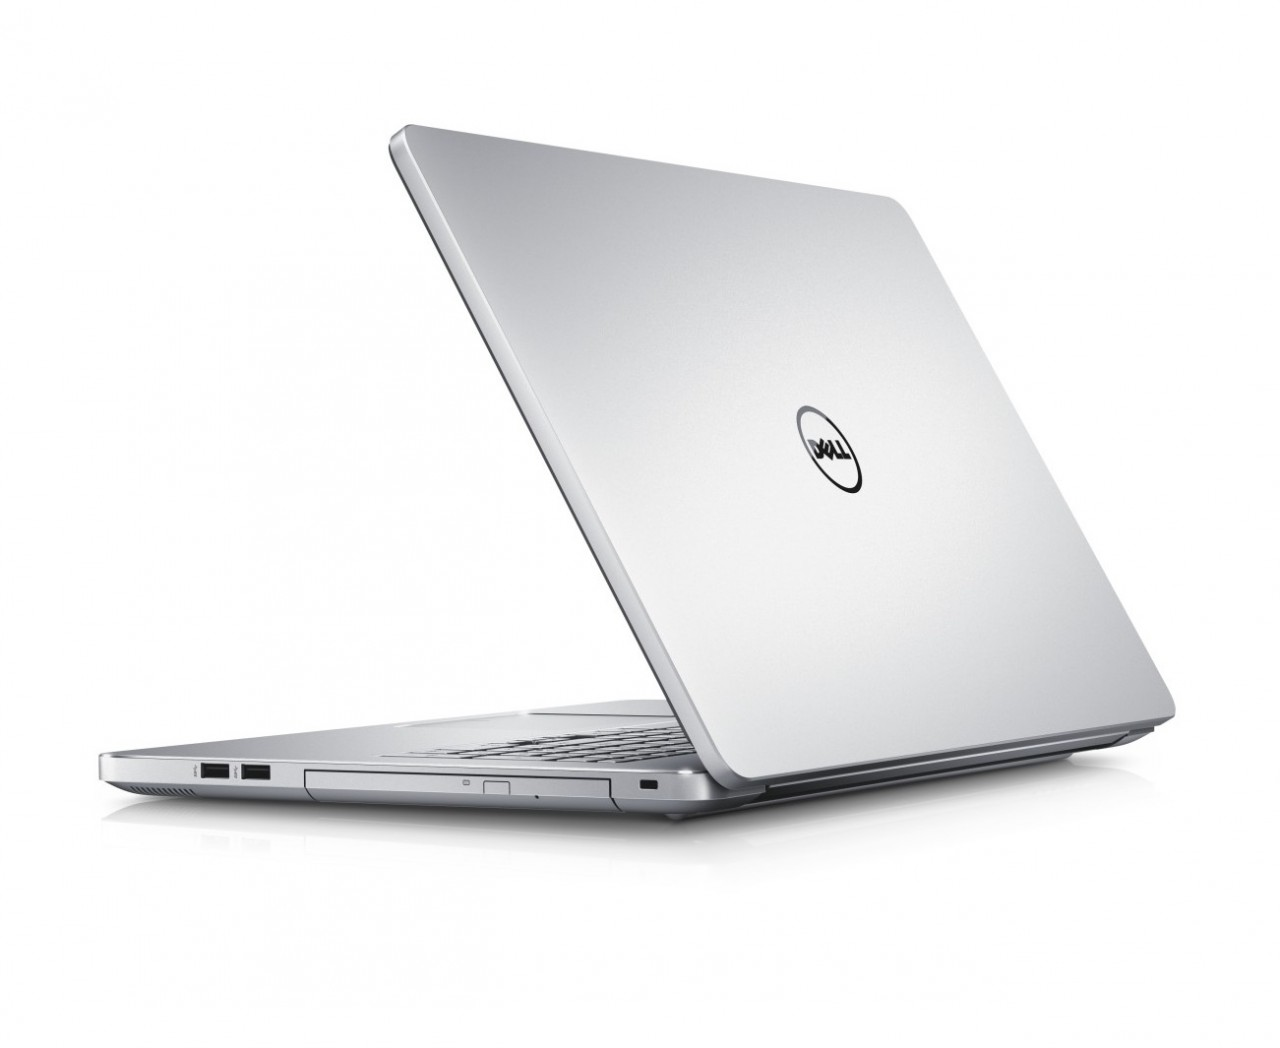 Test Dell Inspiron 15 7000 7567 Gaming Laptop 194764 0 further Dell TB15 Laeutet Ende Der Klassischen Business Docks Ein 158319 0 moreover 89669 Philips Tv Ambilight 4k  oules Hue Et Decodeur Hevc Sous Android L additionally Dell TB15 Laeutet Ende Der Klassischen Business Docks Ein 158319 0 also Review Dell Venue 11 Pro Tablet 110000 0. on dell xps windows 8